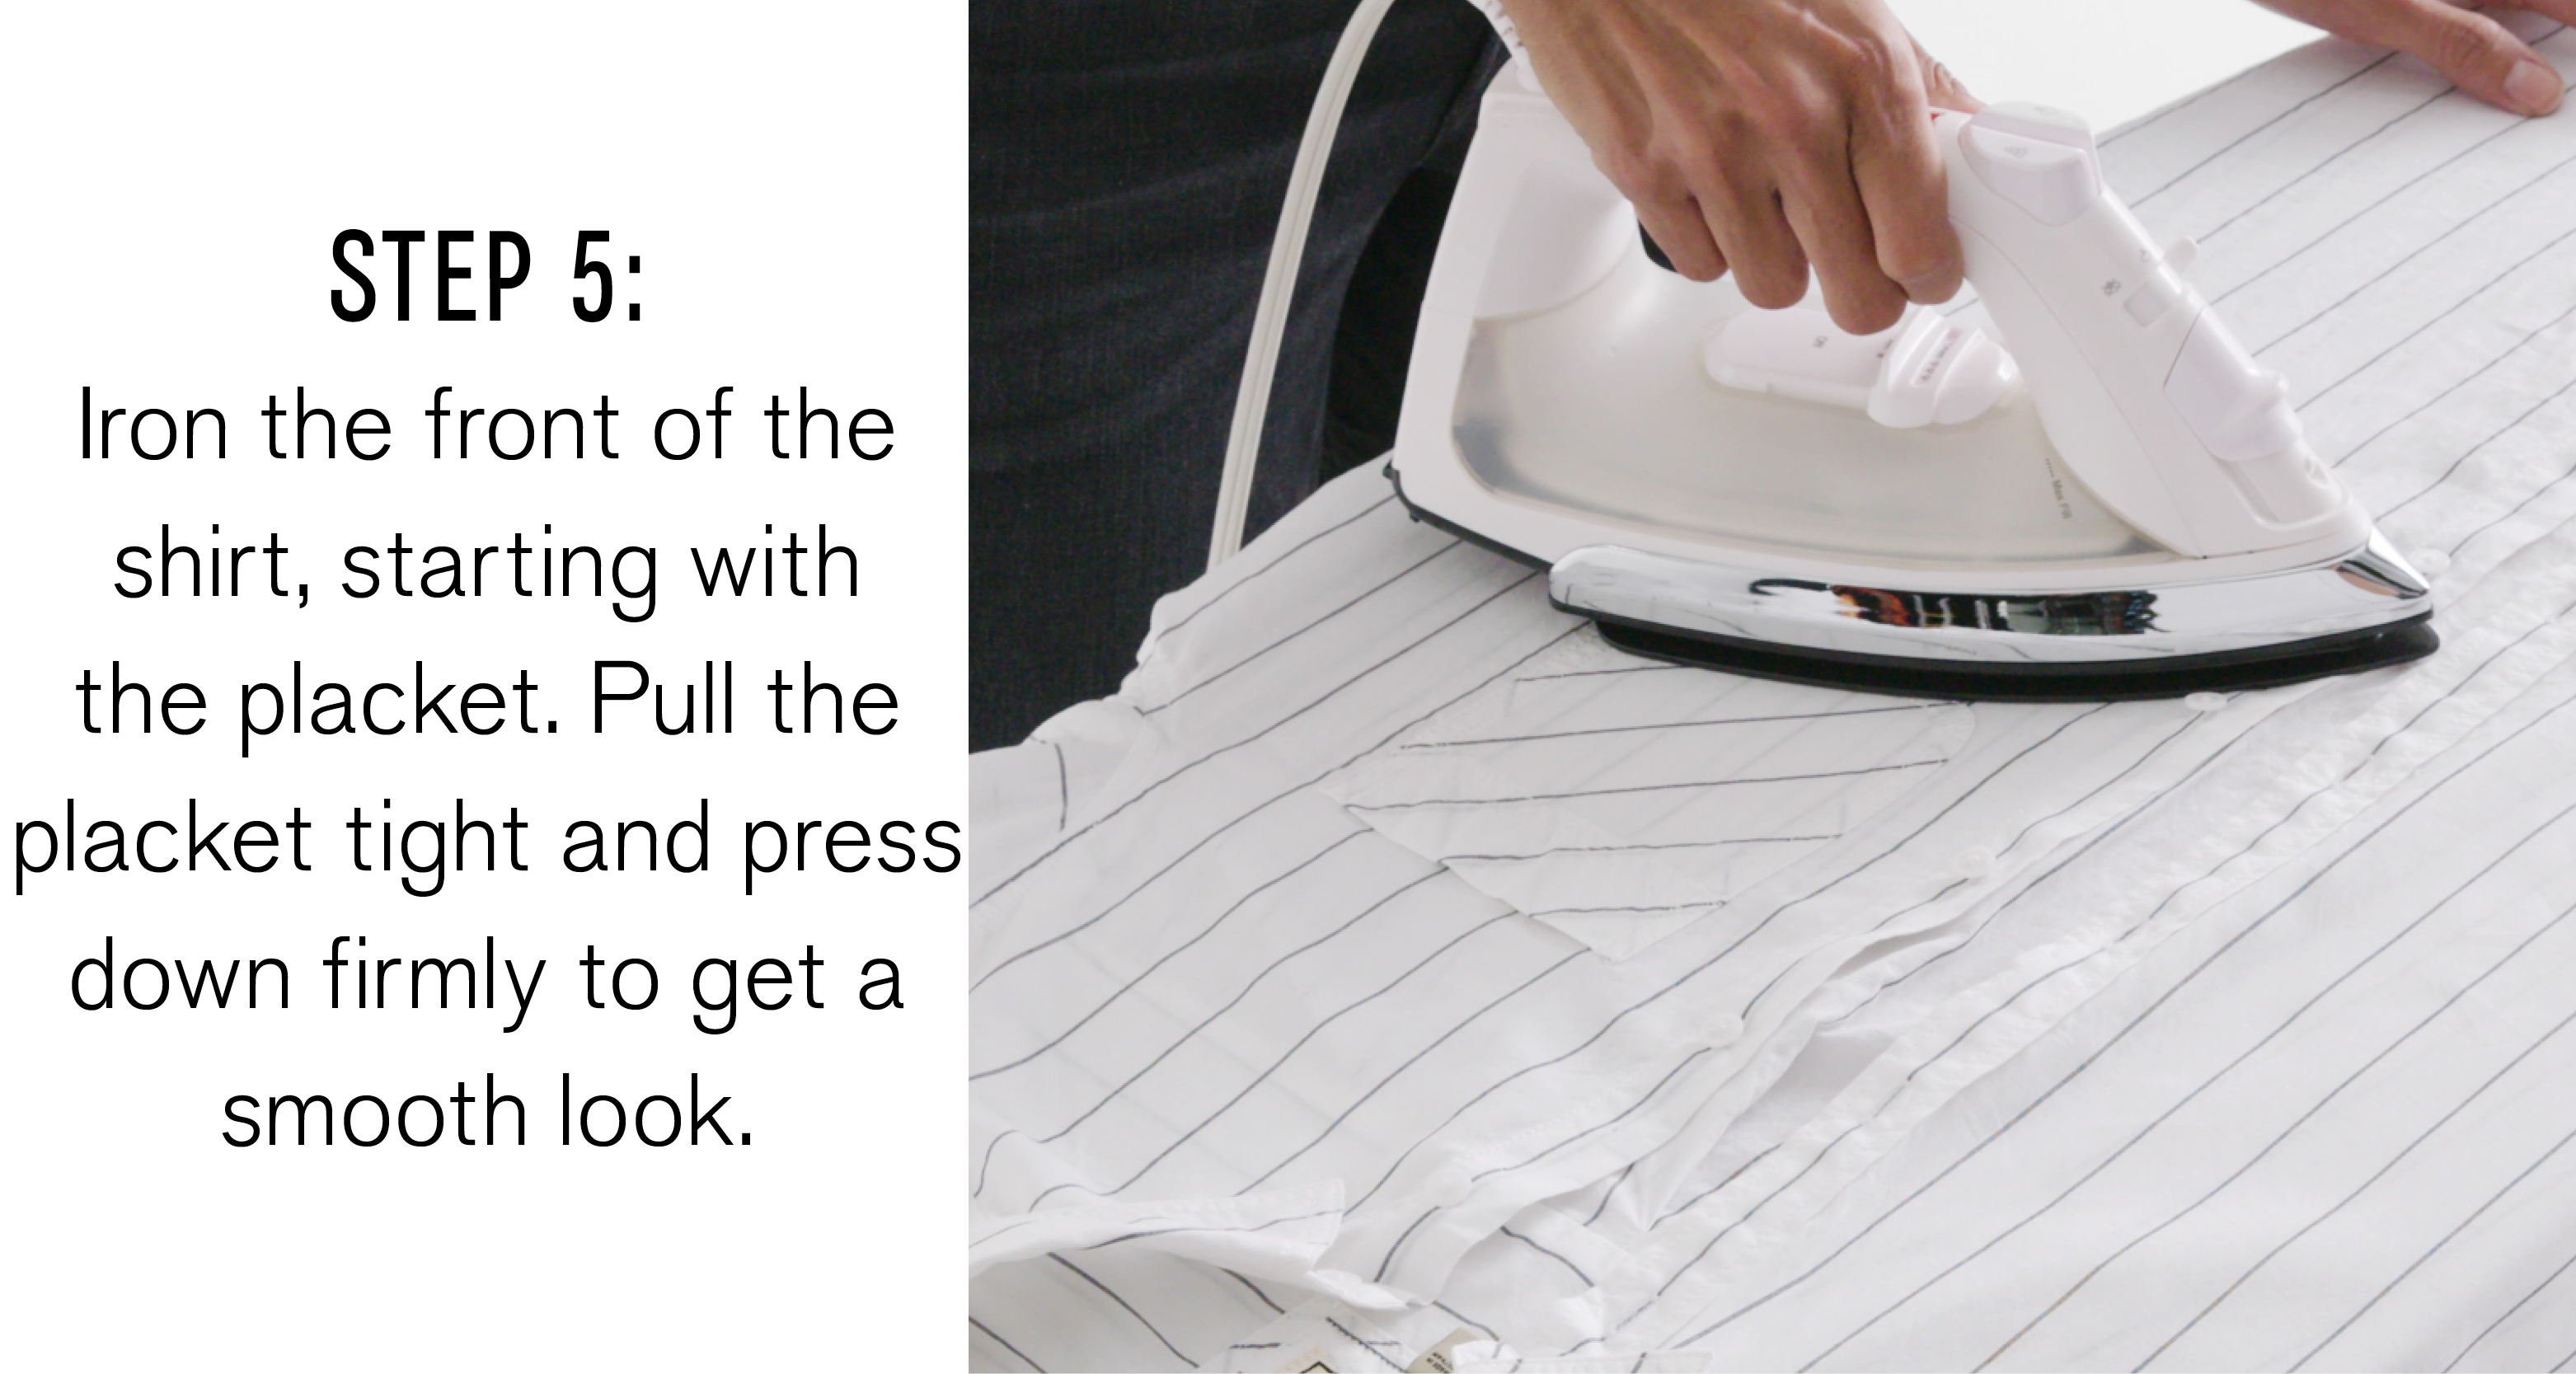 step-five-iron-the-front-of-the-shirt-starting-with-the-placket-pull-the-placket-tight-and-press-down-firmly-to-get-a-smooth-look